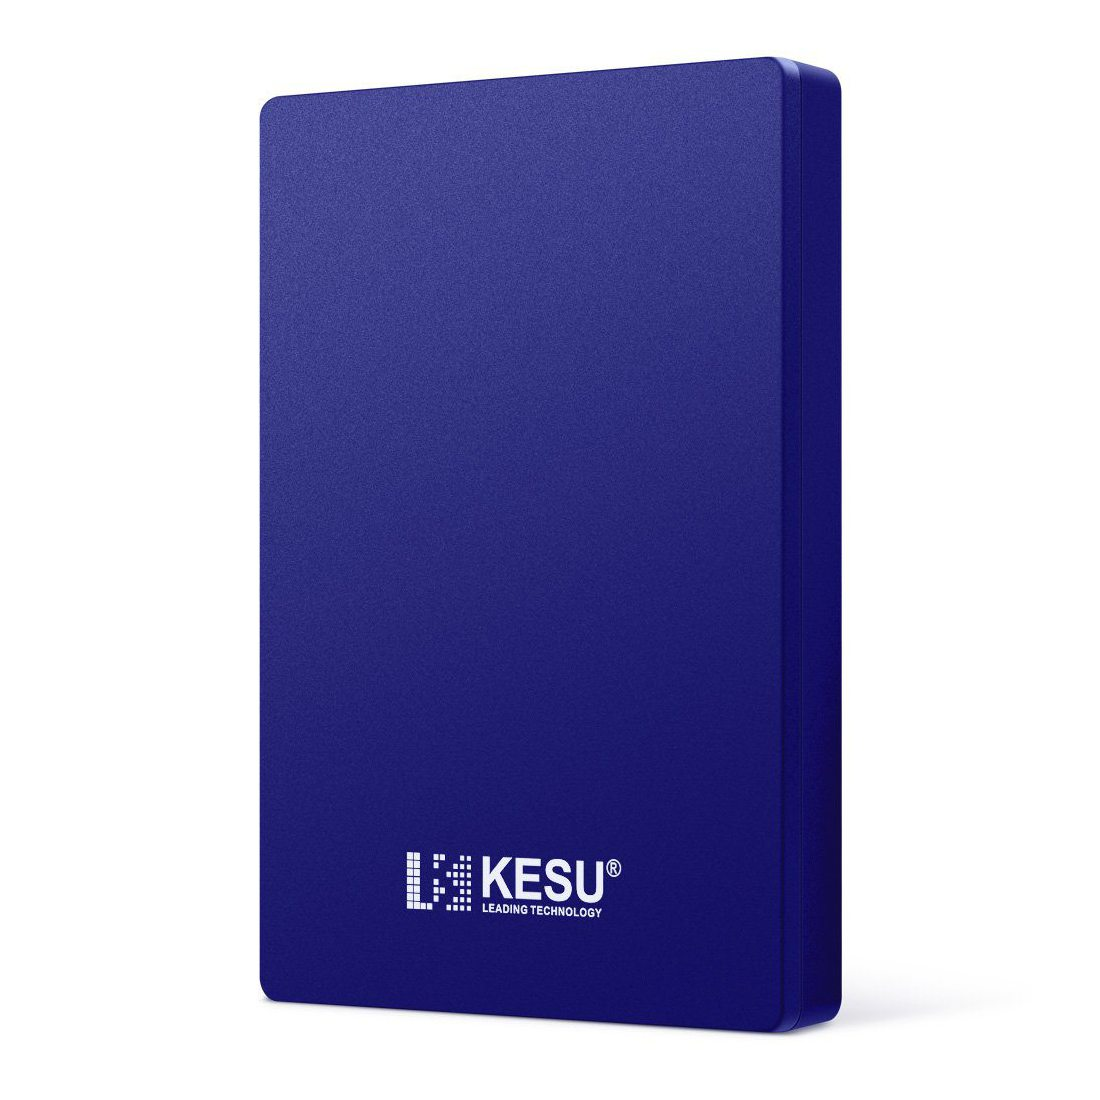 kesu disque dur externe portable 2 5 250go usb3 0 sata. Black Bedroom Furniture Sets. Home Design Ideas